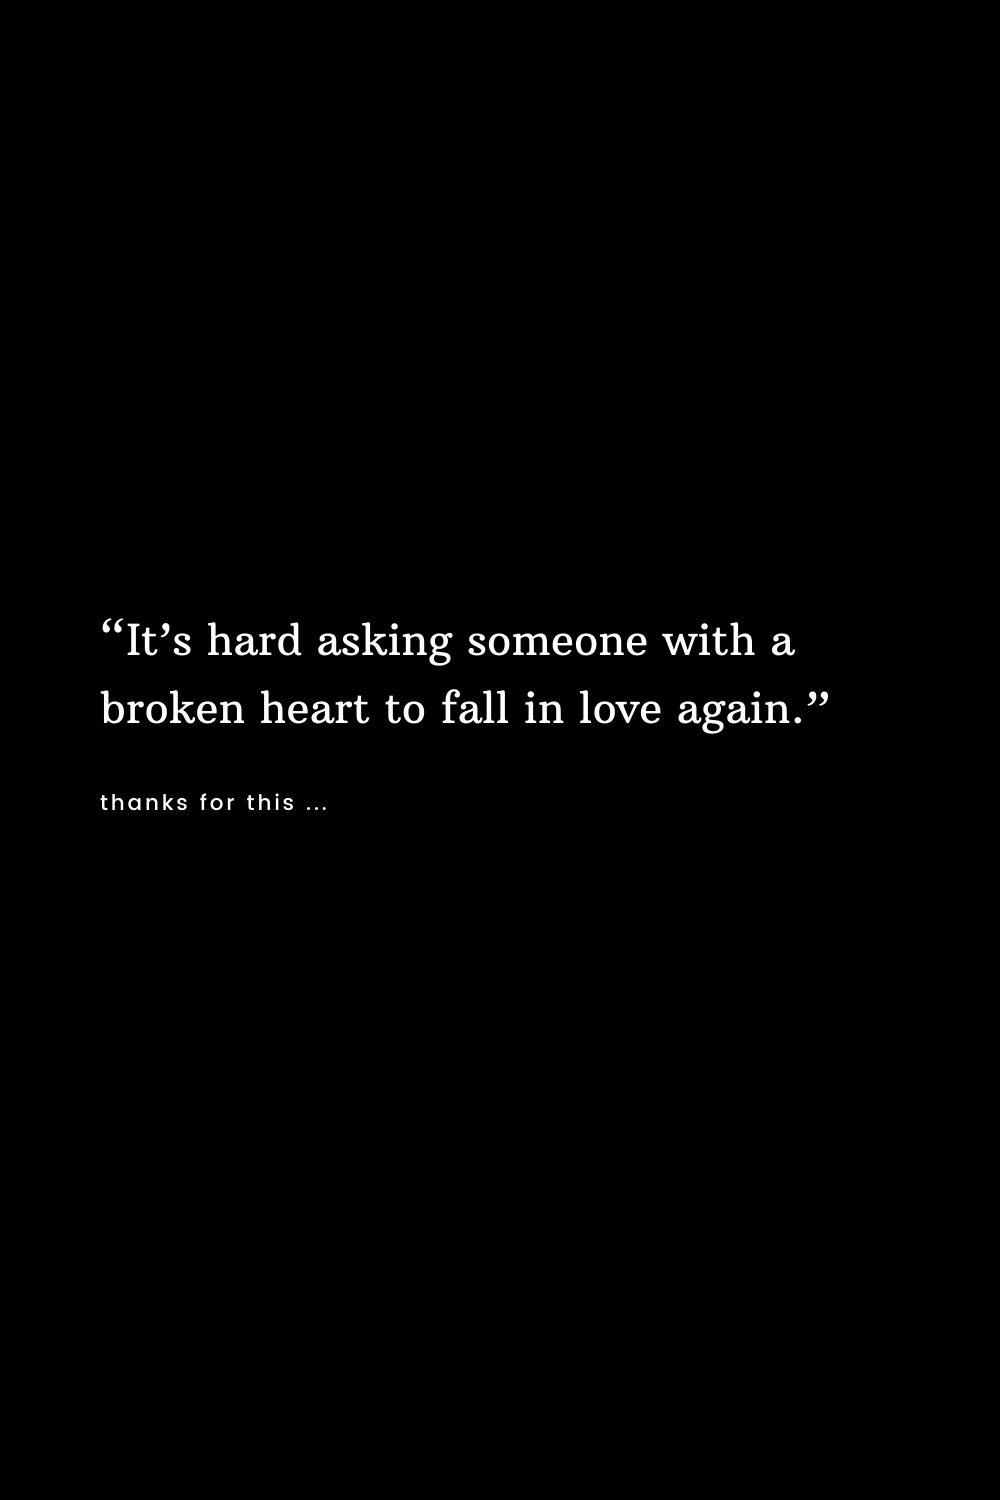 It's hard asking someone with a broken heart to fall in love again.